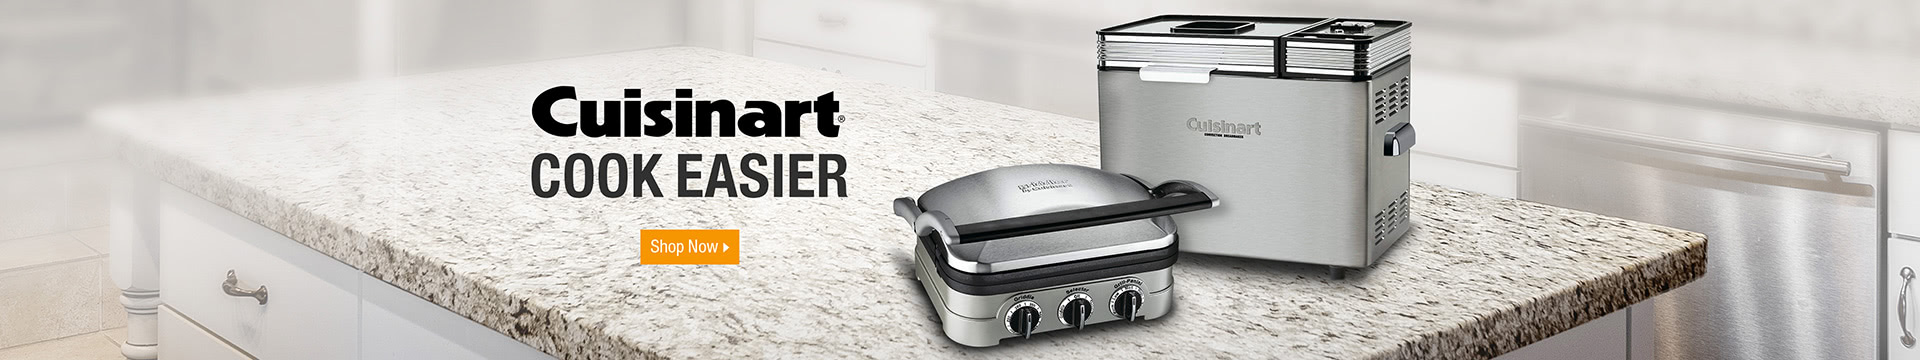 Cuisinart COOK EASIER